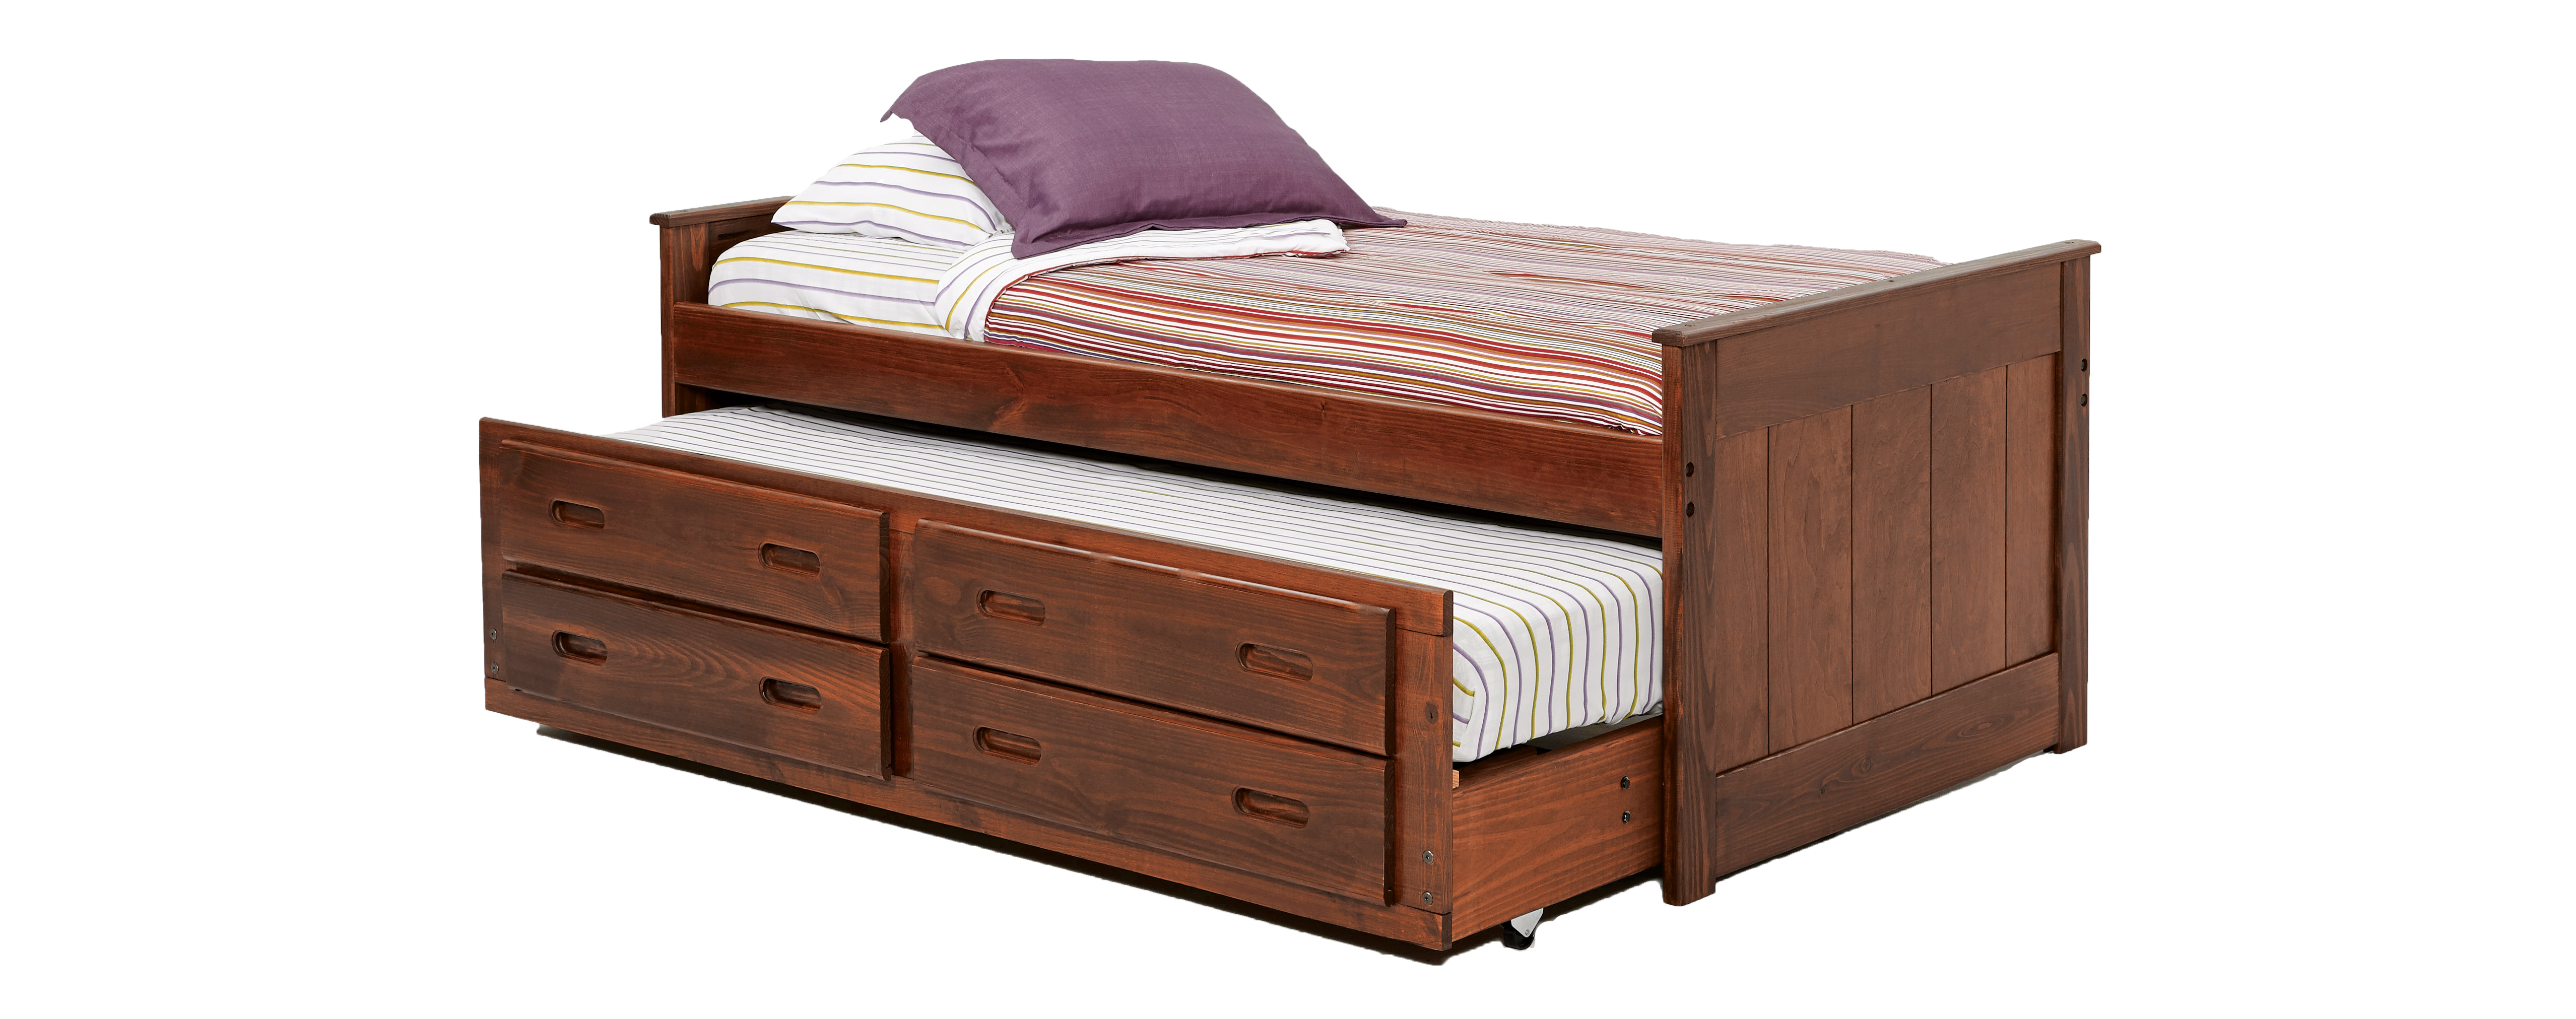 Simply Bunk Beds 234 Captain Bed W Trundle Bunkbed